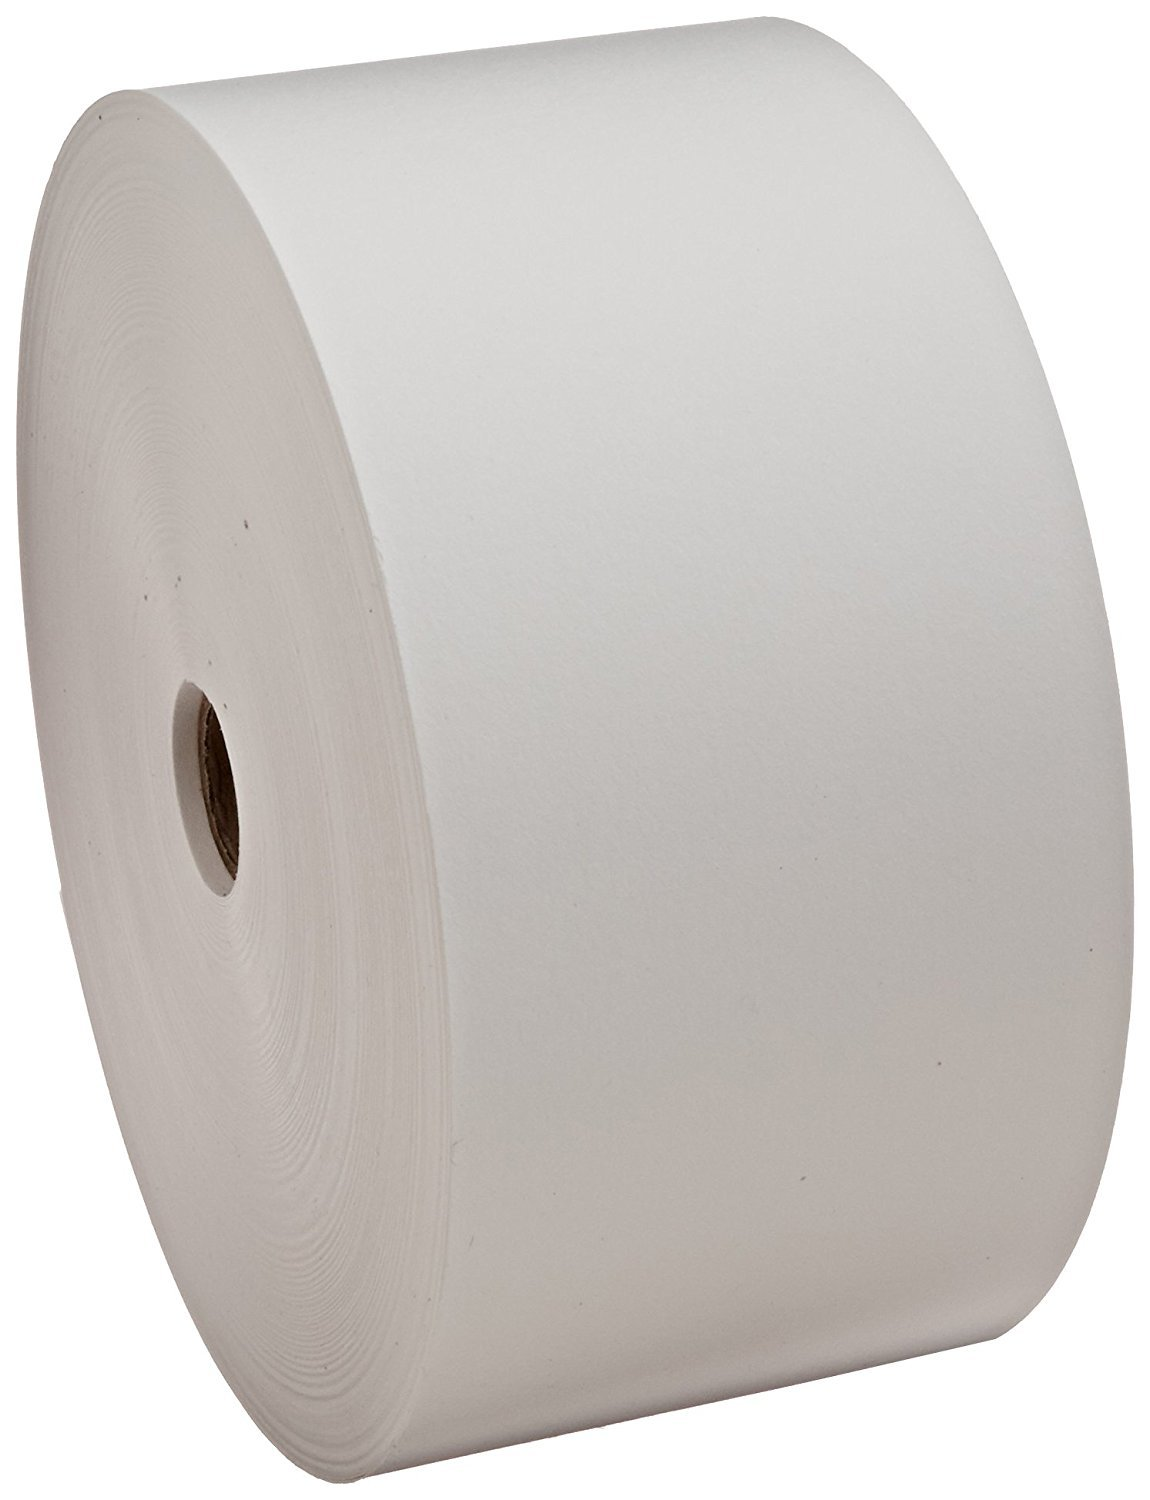 100m Length GE Healthcare Life Sciences 10cm Width GE Whatman 3030-672 Grade 3MM Chr Cellulose Chromatography Paper Roll